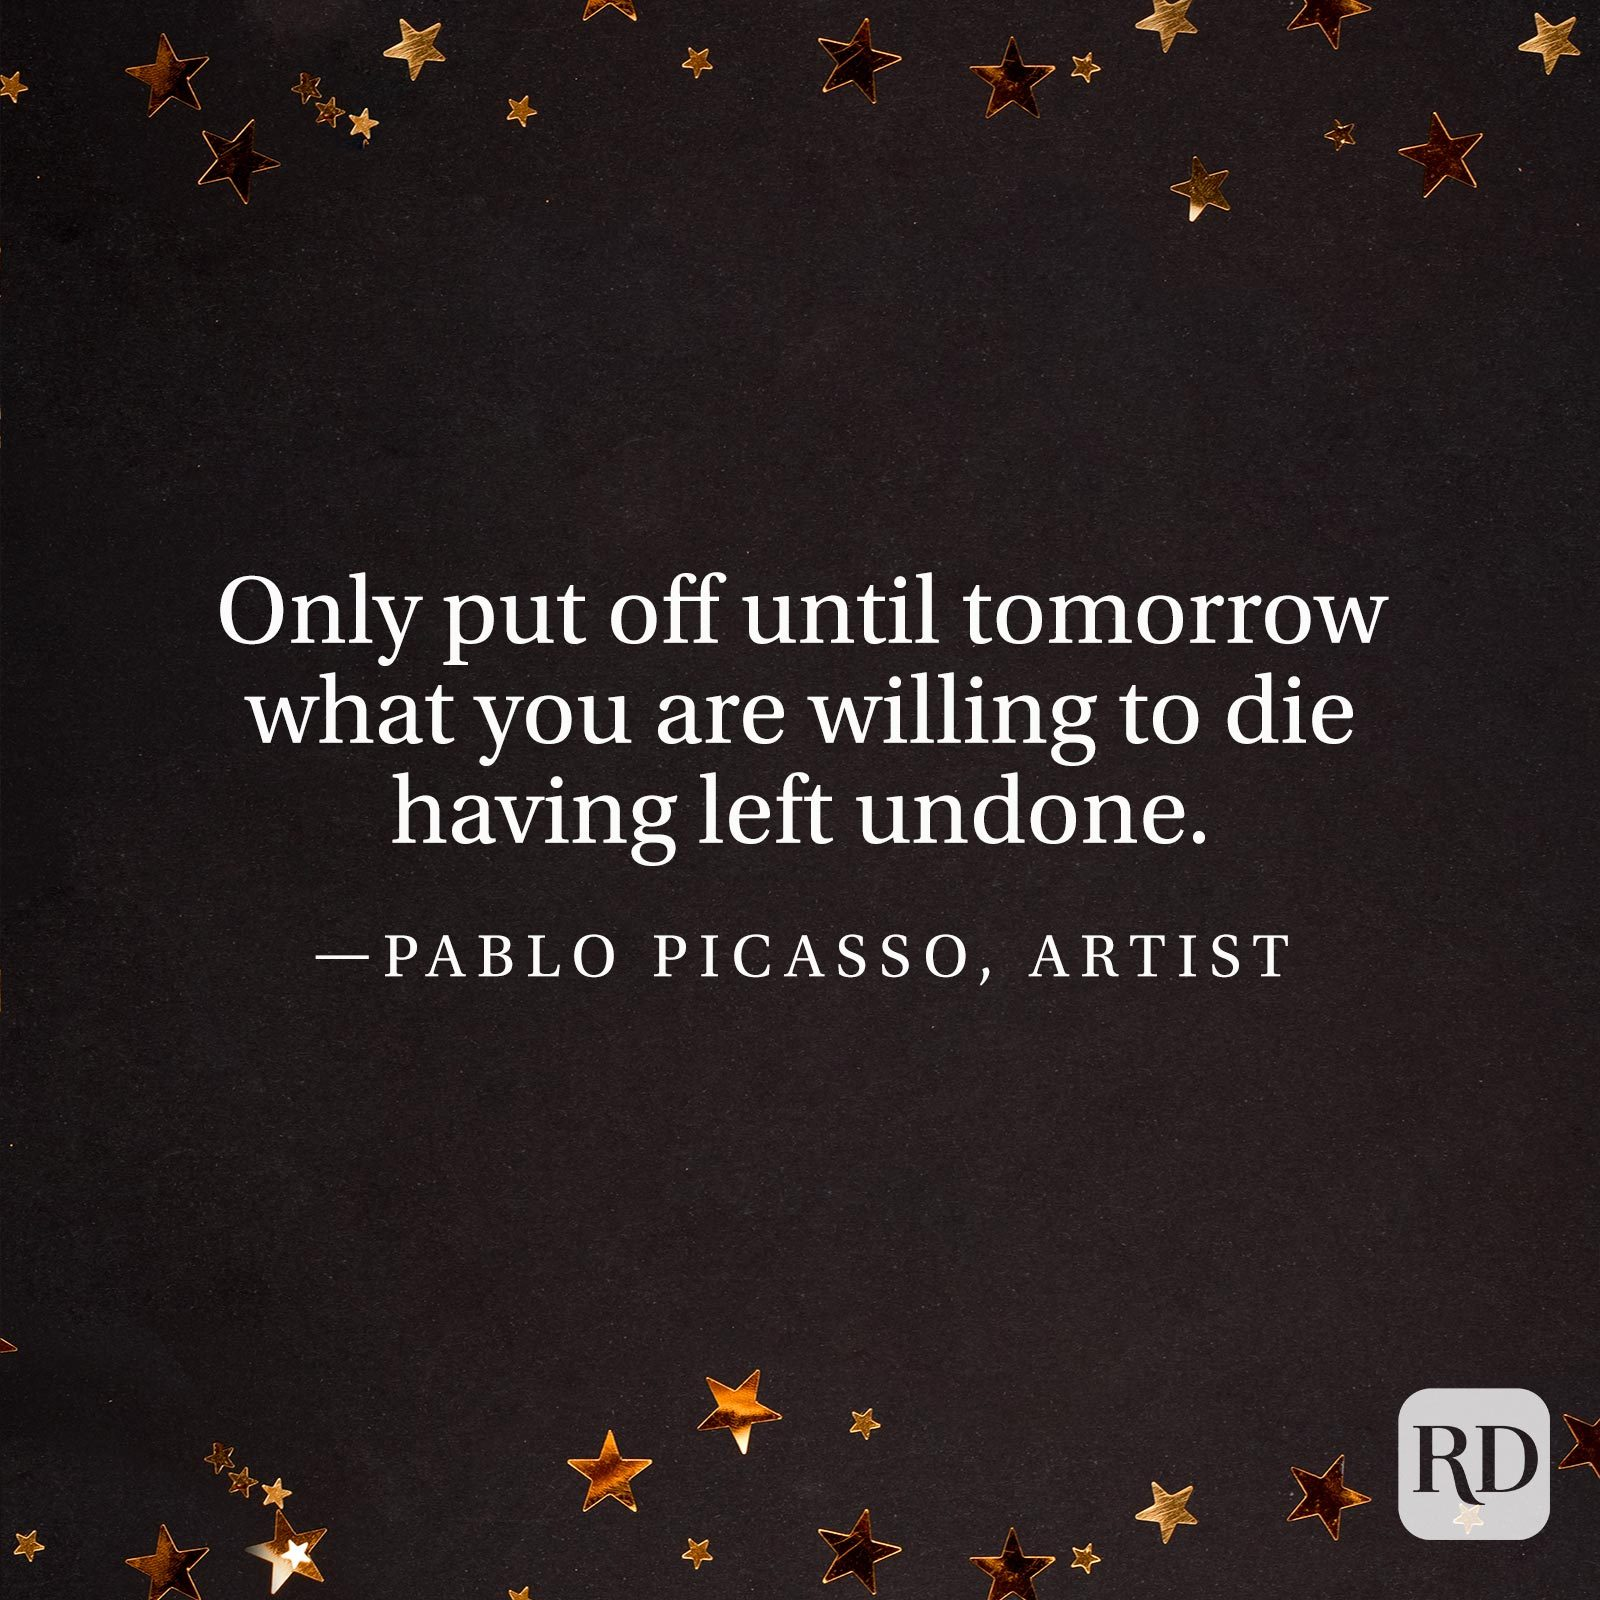 """Only put off until tomorrow what you are willing to die having left undone."" —Pablo Picasso, artist."